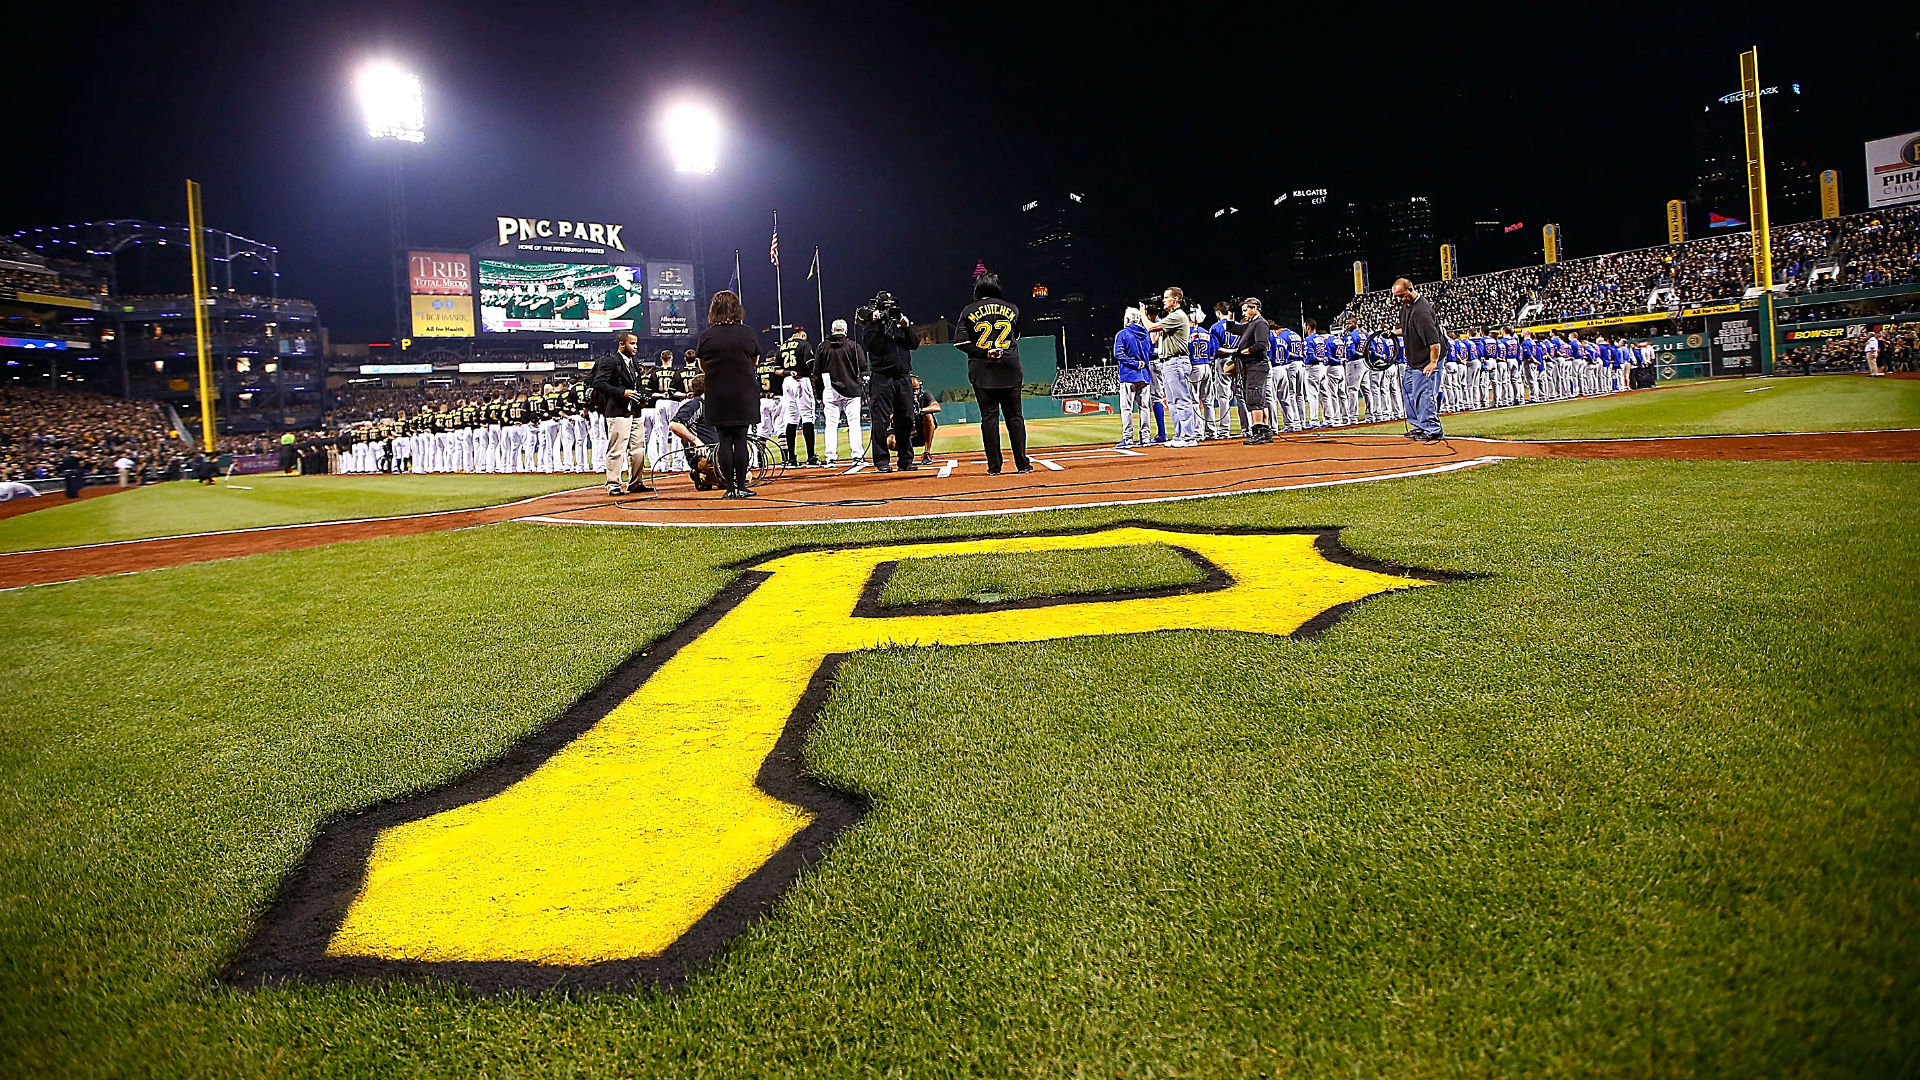 Details emerge from Felipe Vazquez case; Pirates rocked by accusations